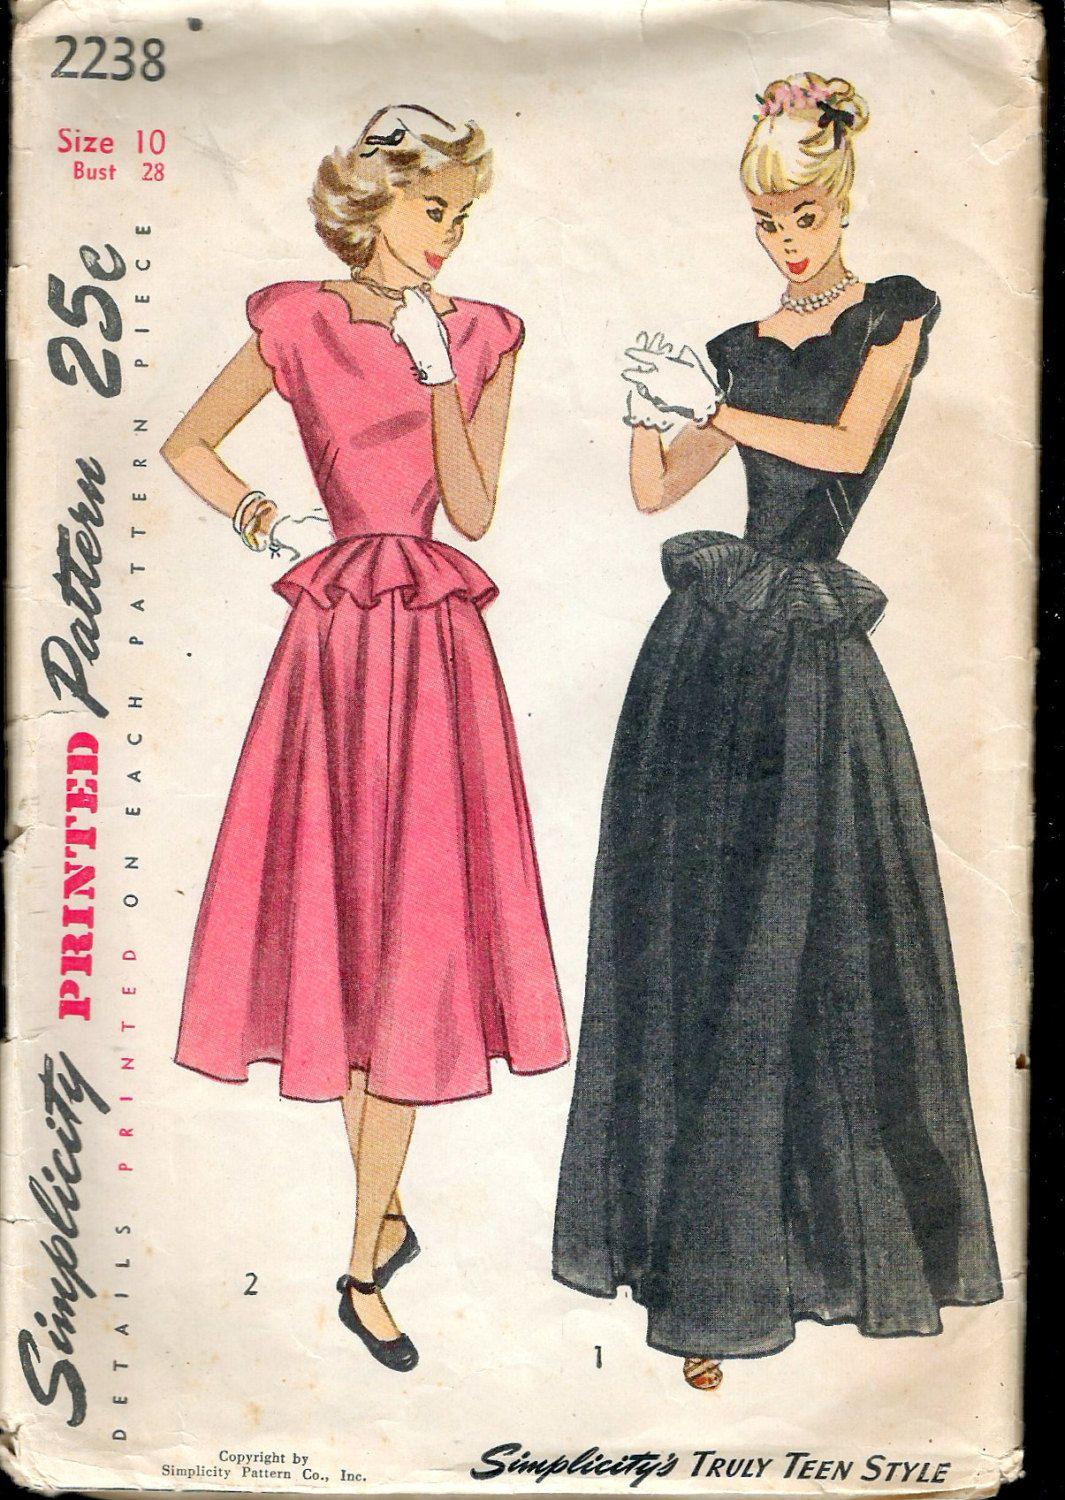 """Vintage 1947 Simplicity 2238 Teen-Age One-Piece Daytime & Evening Dress Sewing Pattern Size 10 Bust 28"""" by Recycledelic1 on Etsy"""